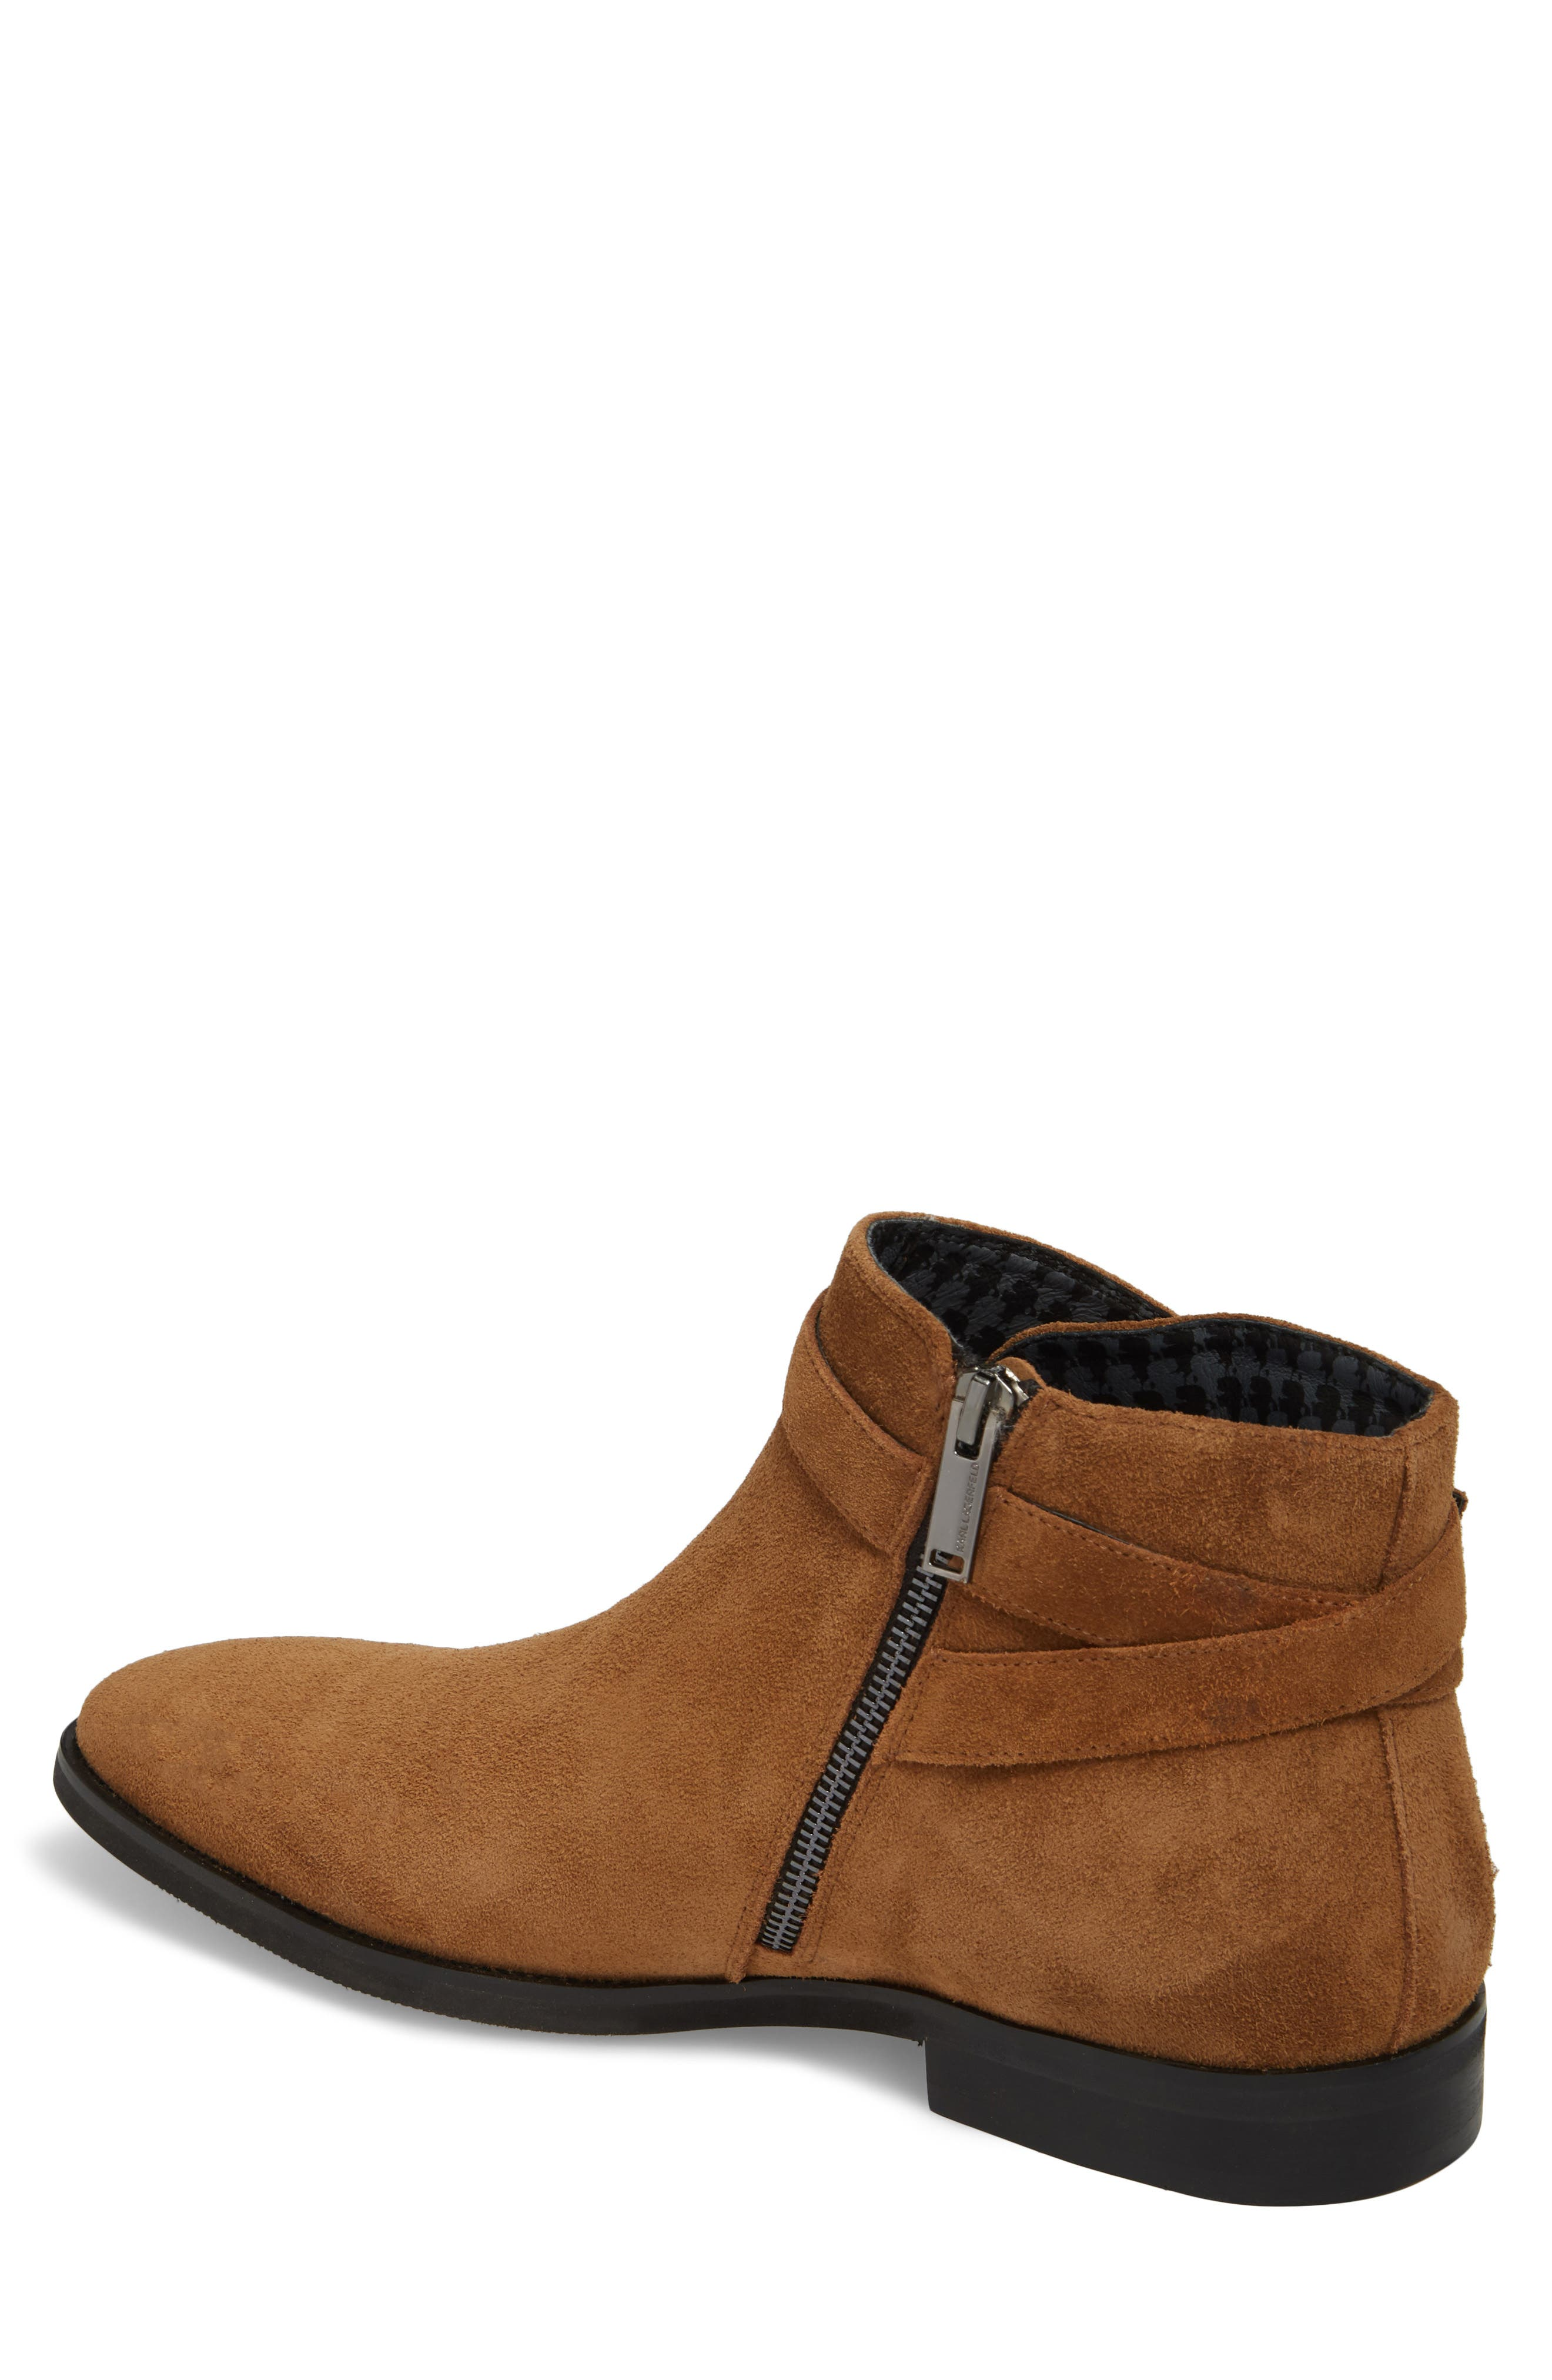 Ankle Wrap Boot,                             Alternate thumbnail 2, color,                             Desert